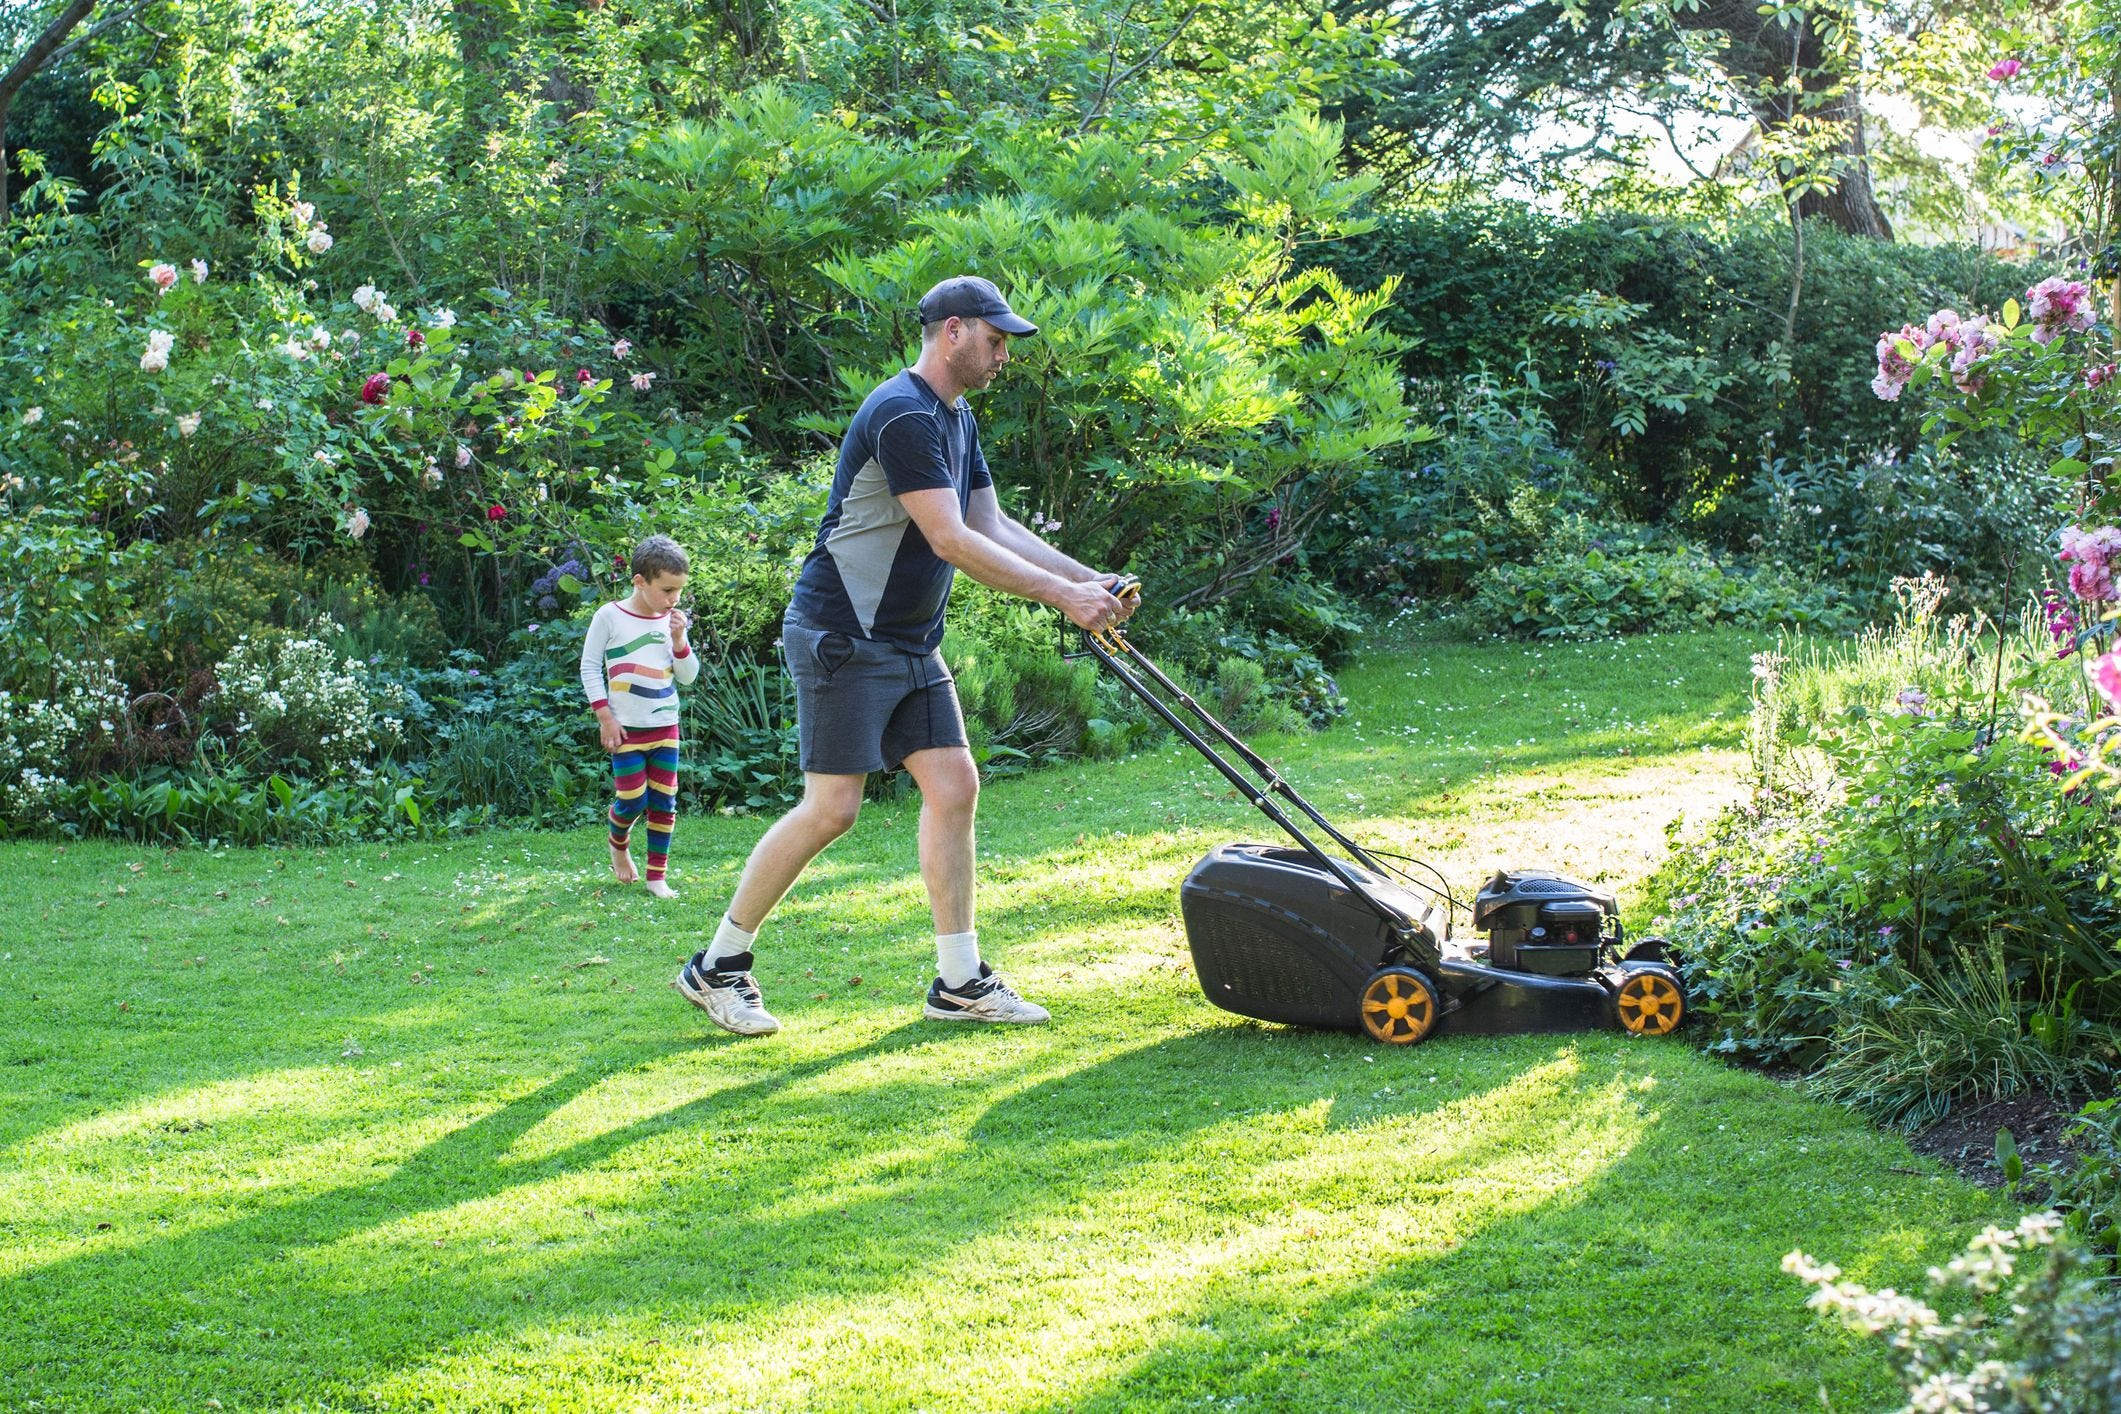 usatoday.com - Sonja Haller, USA TODAY - Meet the 'lawnmower parent,' the new helicopter parents of 2018